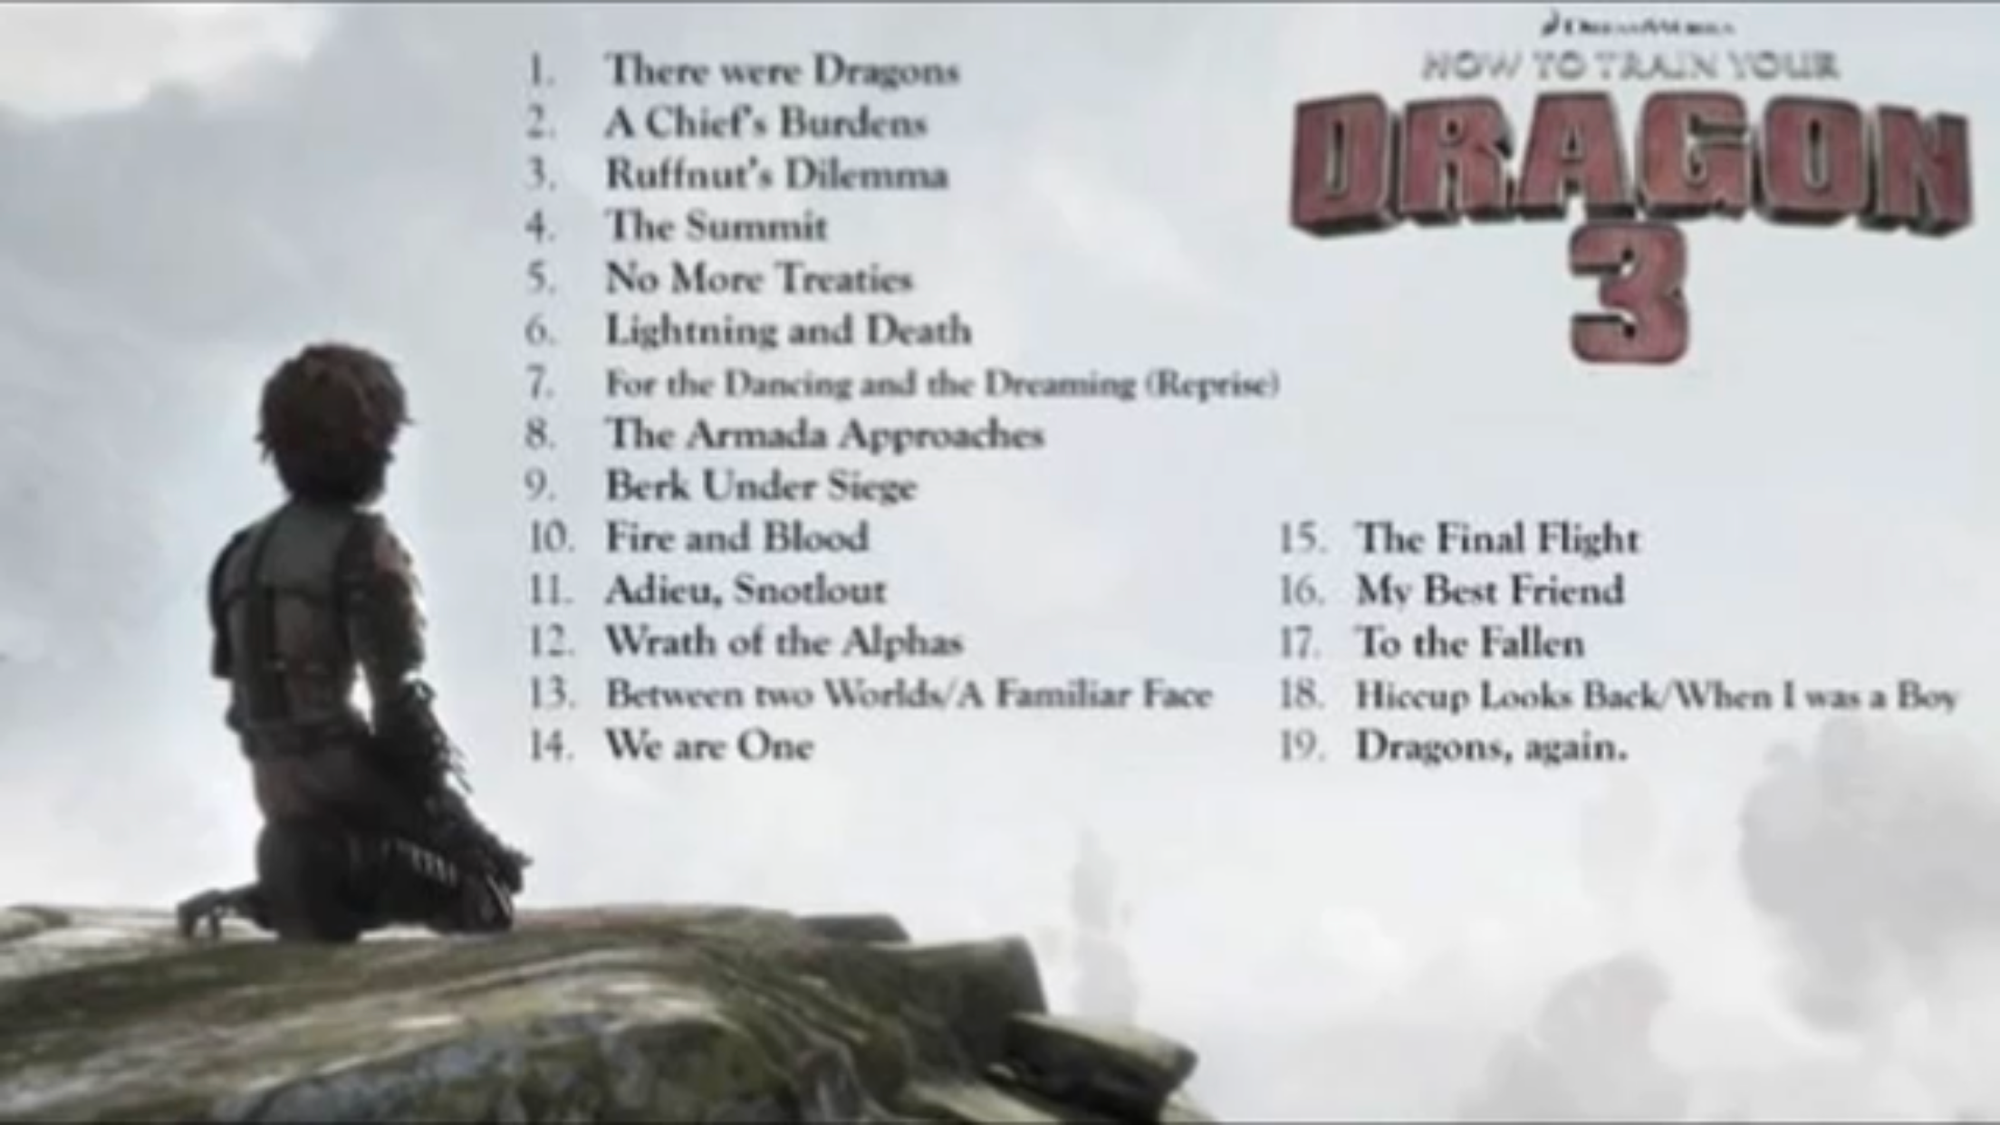 Httyd 3 soundtrack discussions how to train your dragon wiki im thinking that if it was the official soundtrack for httyd 3 it would have a how to train your dragon 3 background what do u guys think ccuart Image collections